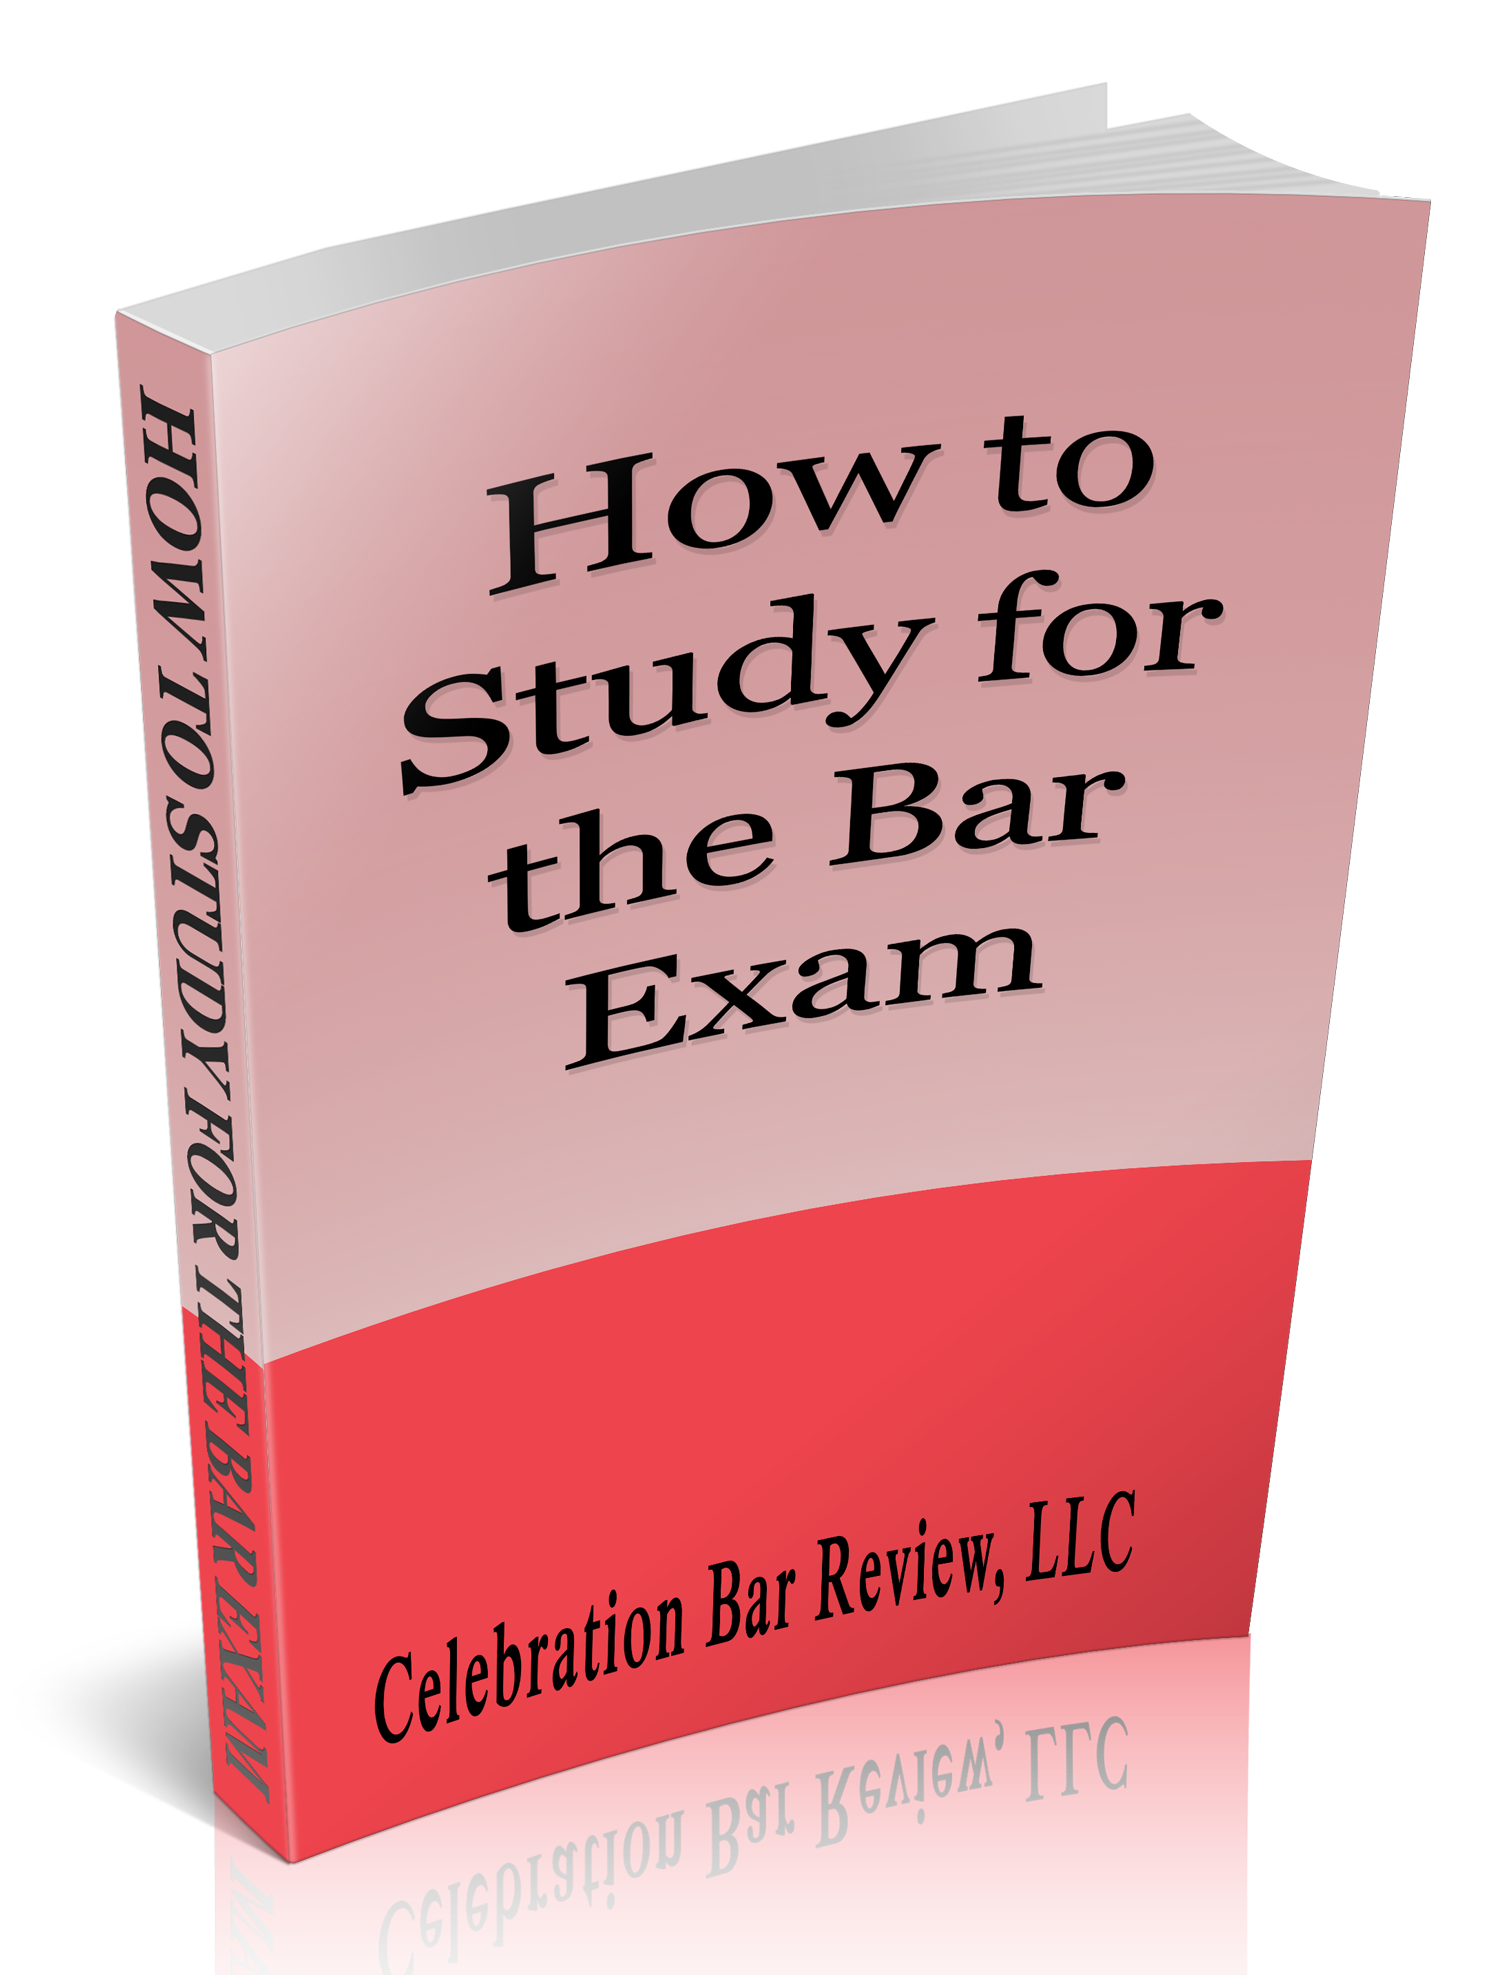 Which States Have the Most Difficult Bar Exams?